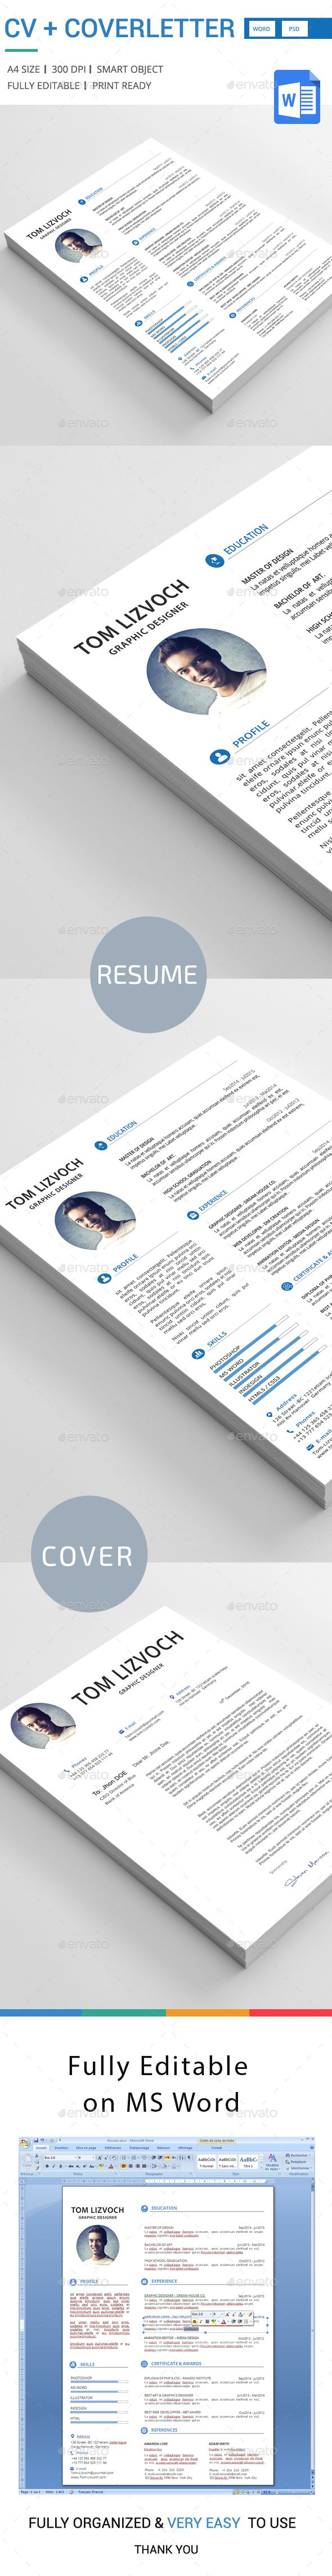 99 best CV images on Pinterest | Resume design, Resume templates ...